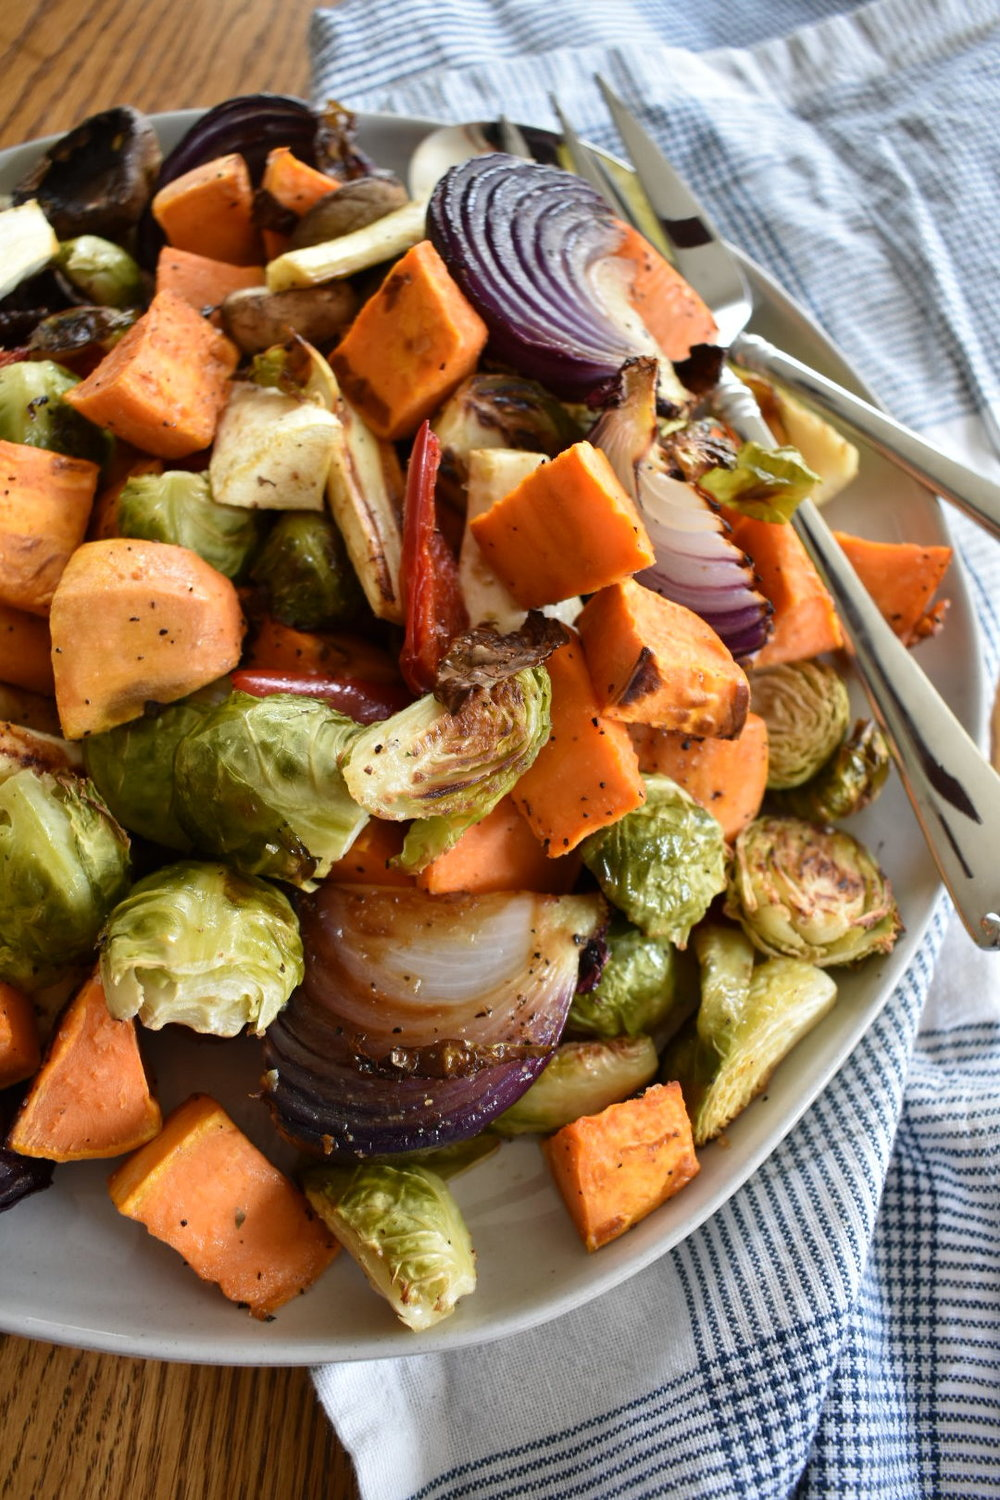 roasted vegetables on serving platter